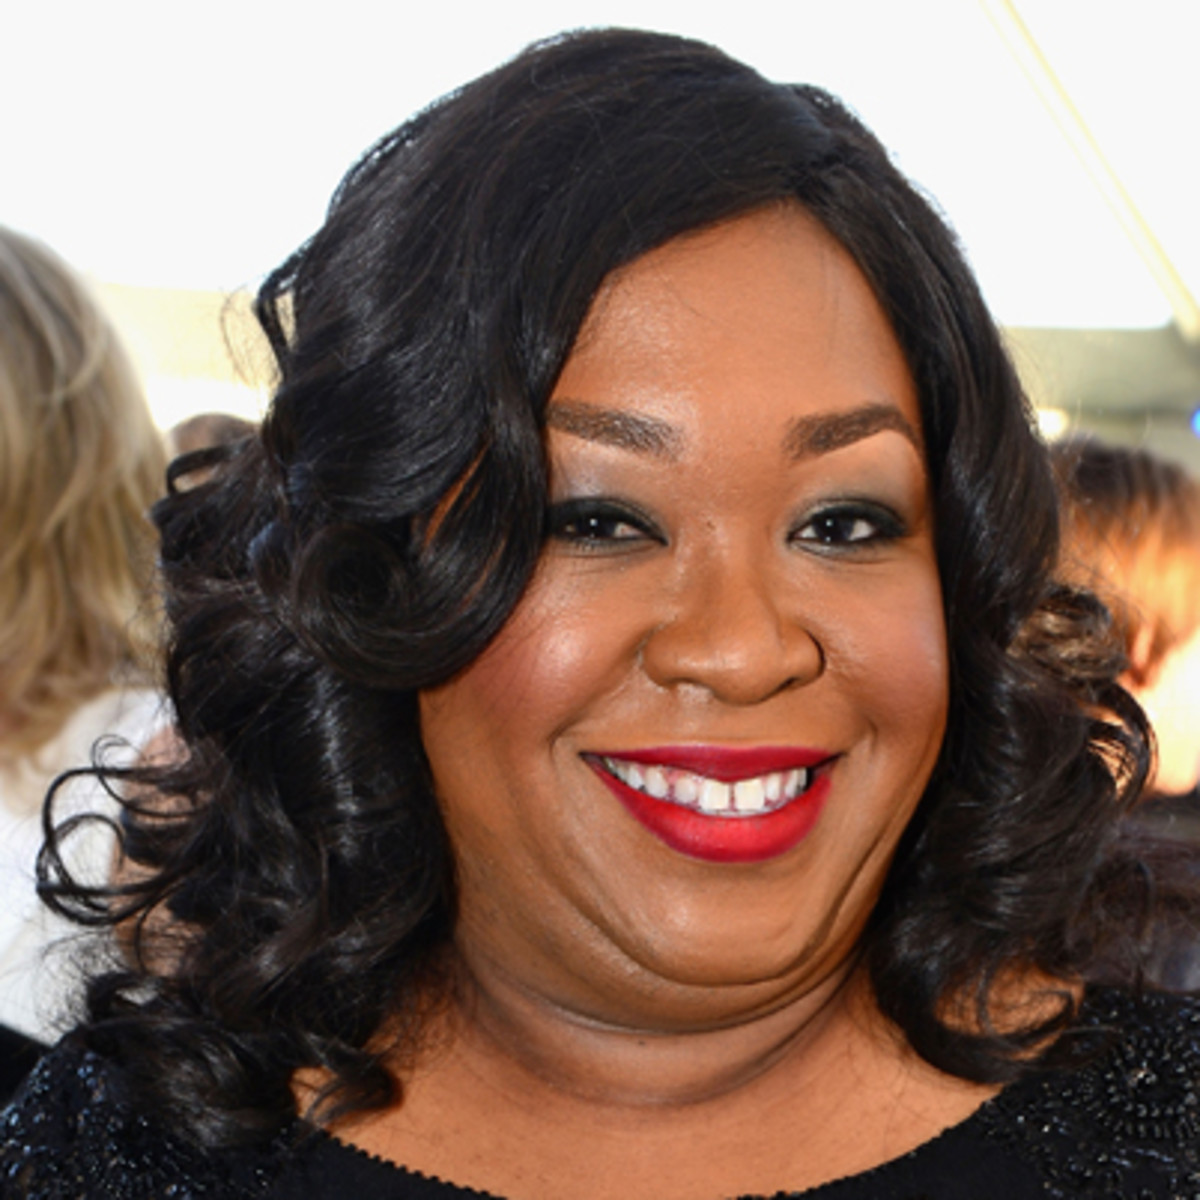 WASHINGTON, DC - APRIL 27: Shonda Rhimes attends ABC News, Yahoo! News, Univision Pre-White House Correspondents Dinner cocktail reception at Washington Hilton on April 27, 2013 in Washington, DC.  (Photo by Leigh Vogel/Getty Images for Yahoo! News)